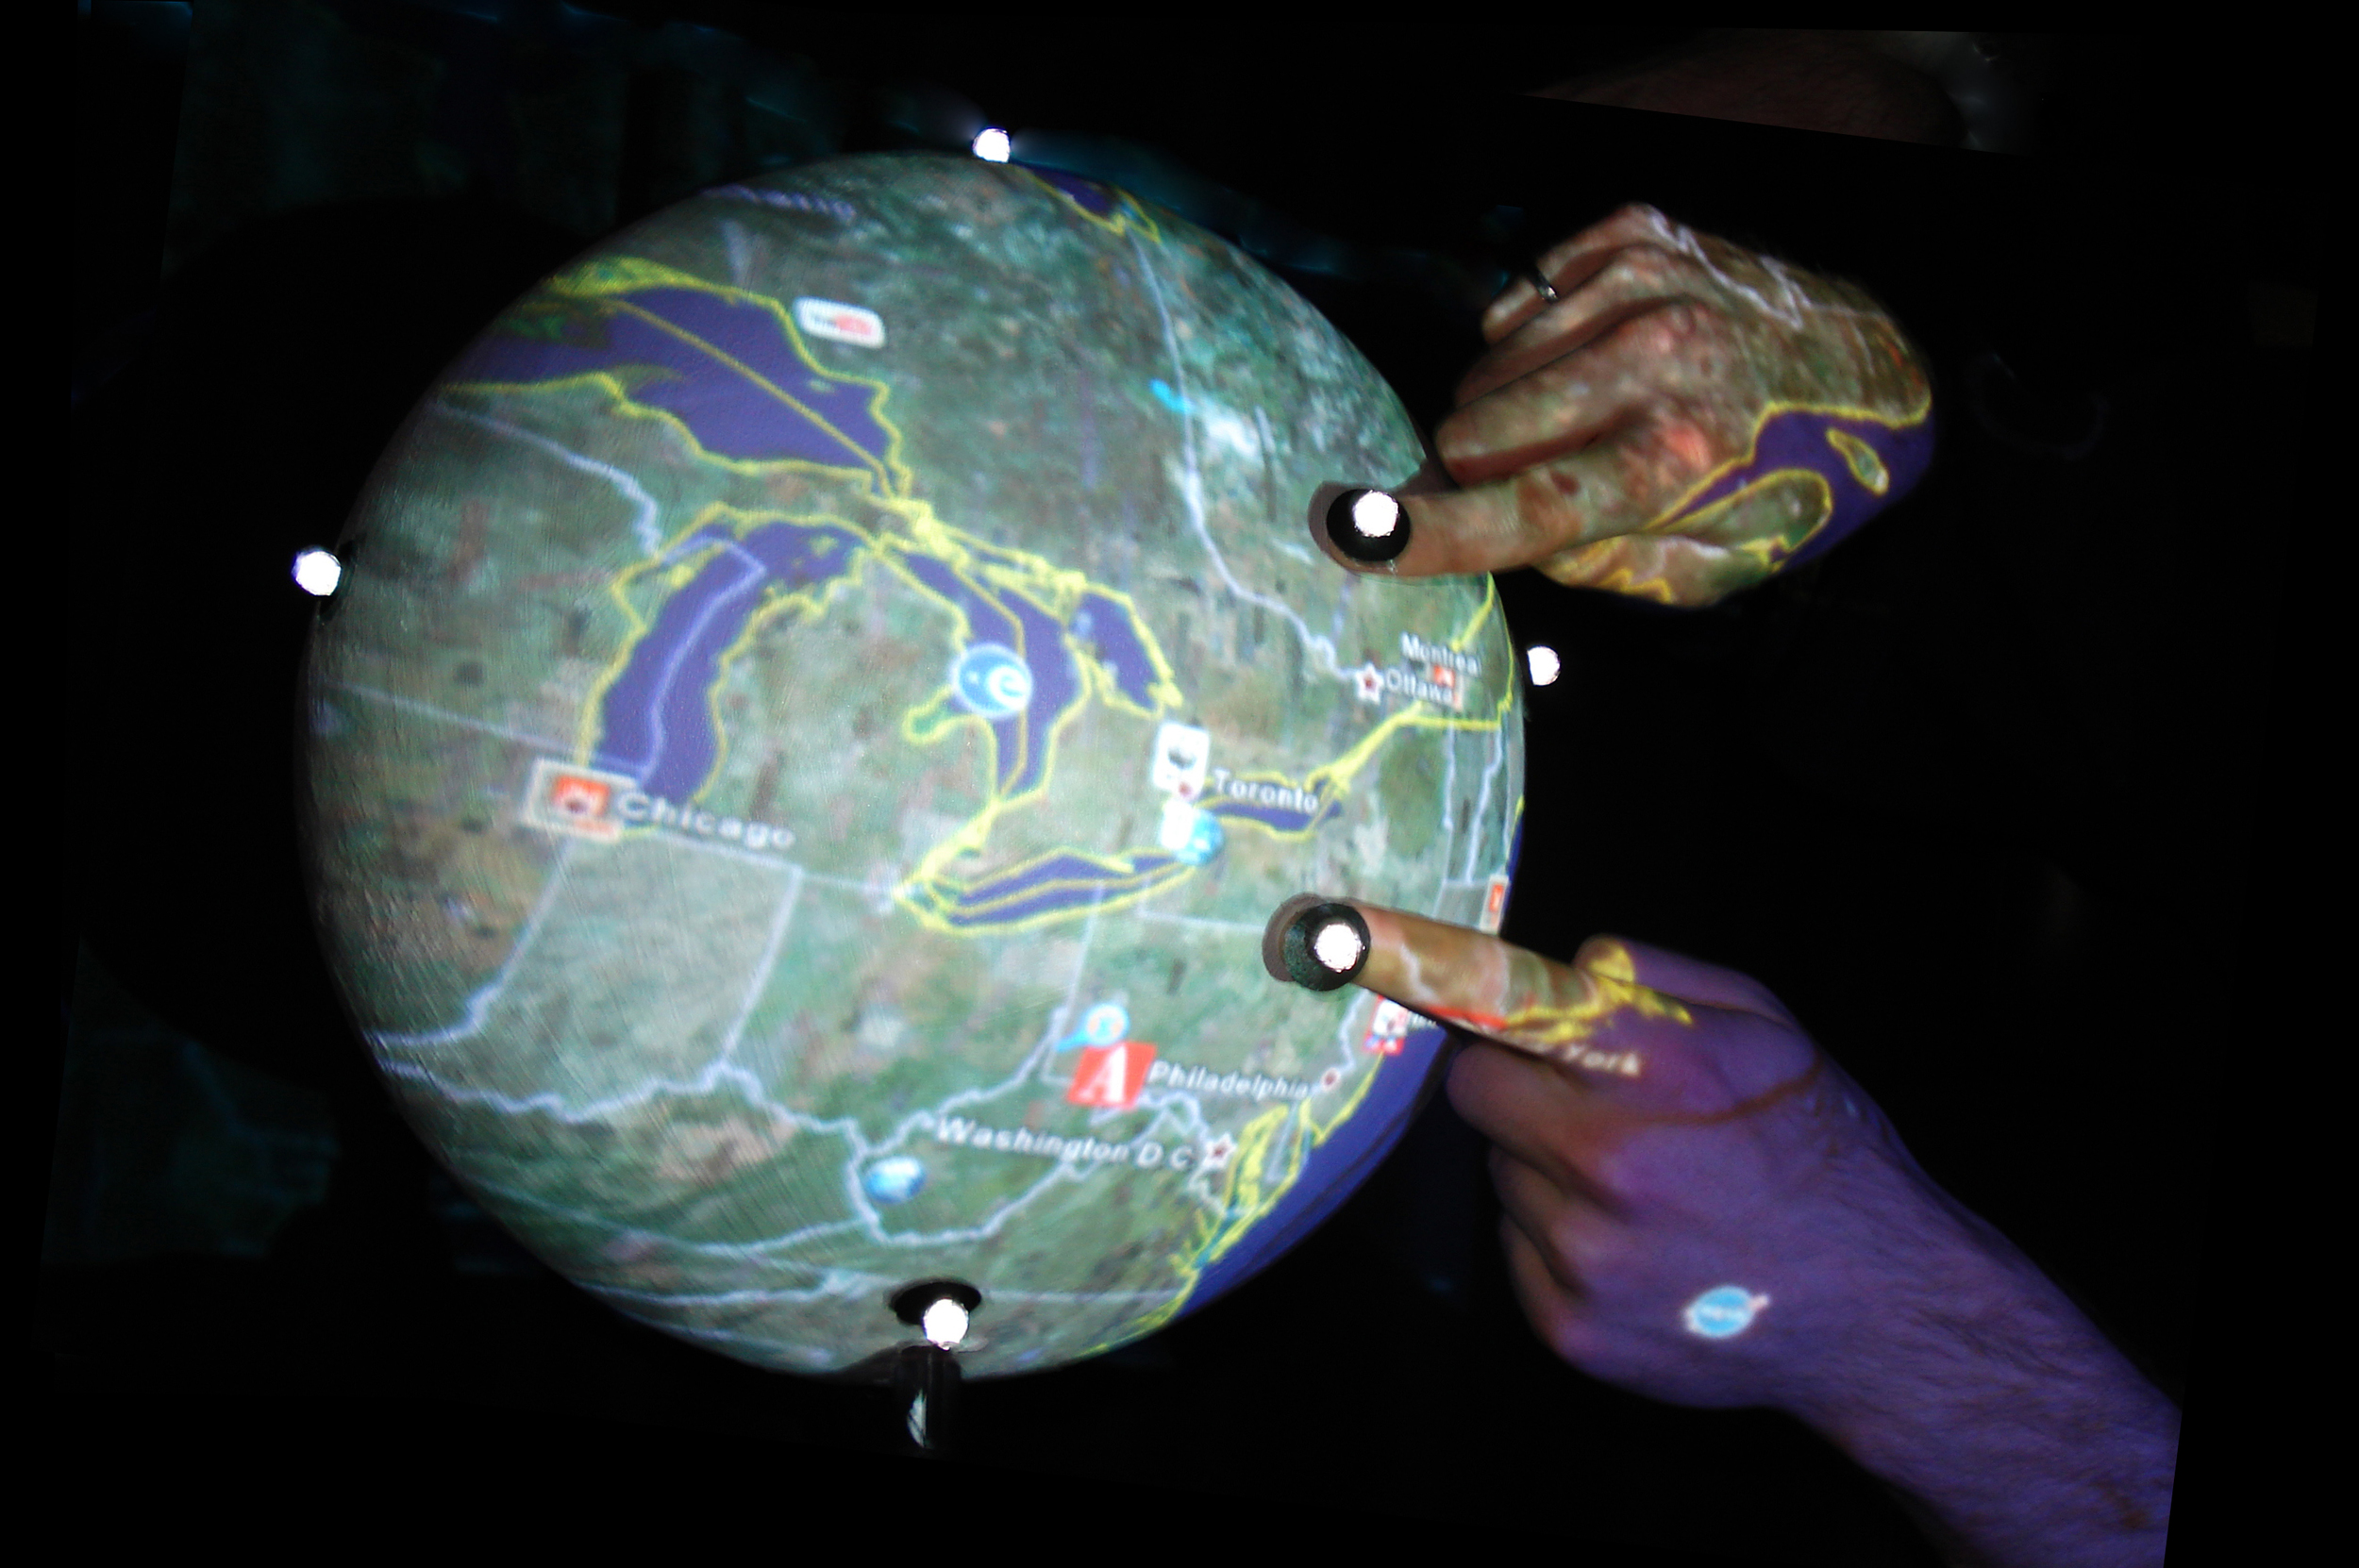 first multitouch sphere (2008): zoom out gesture